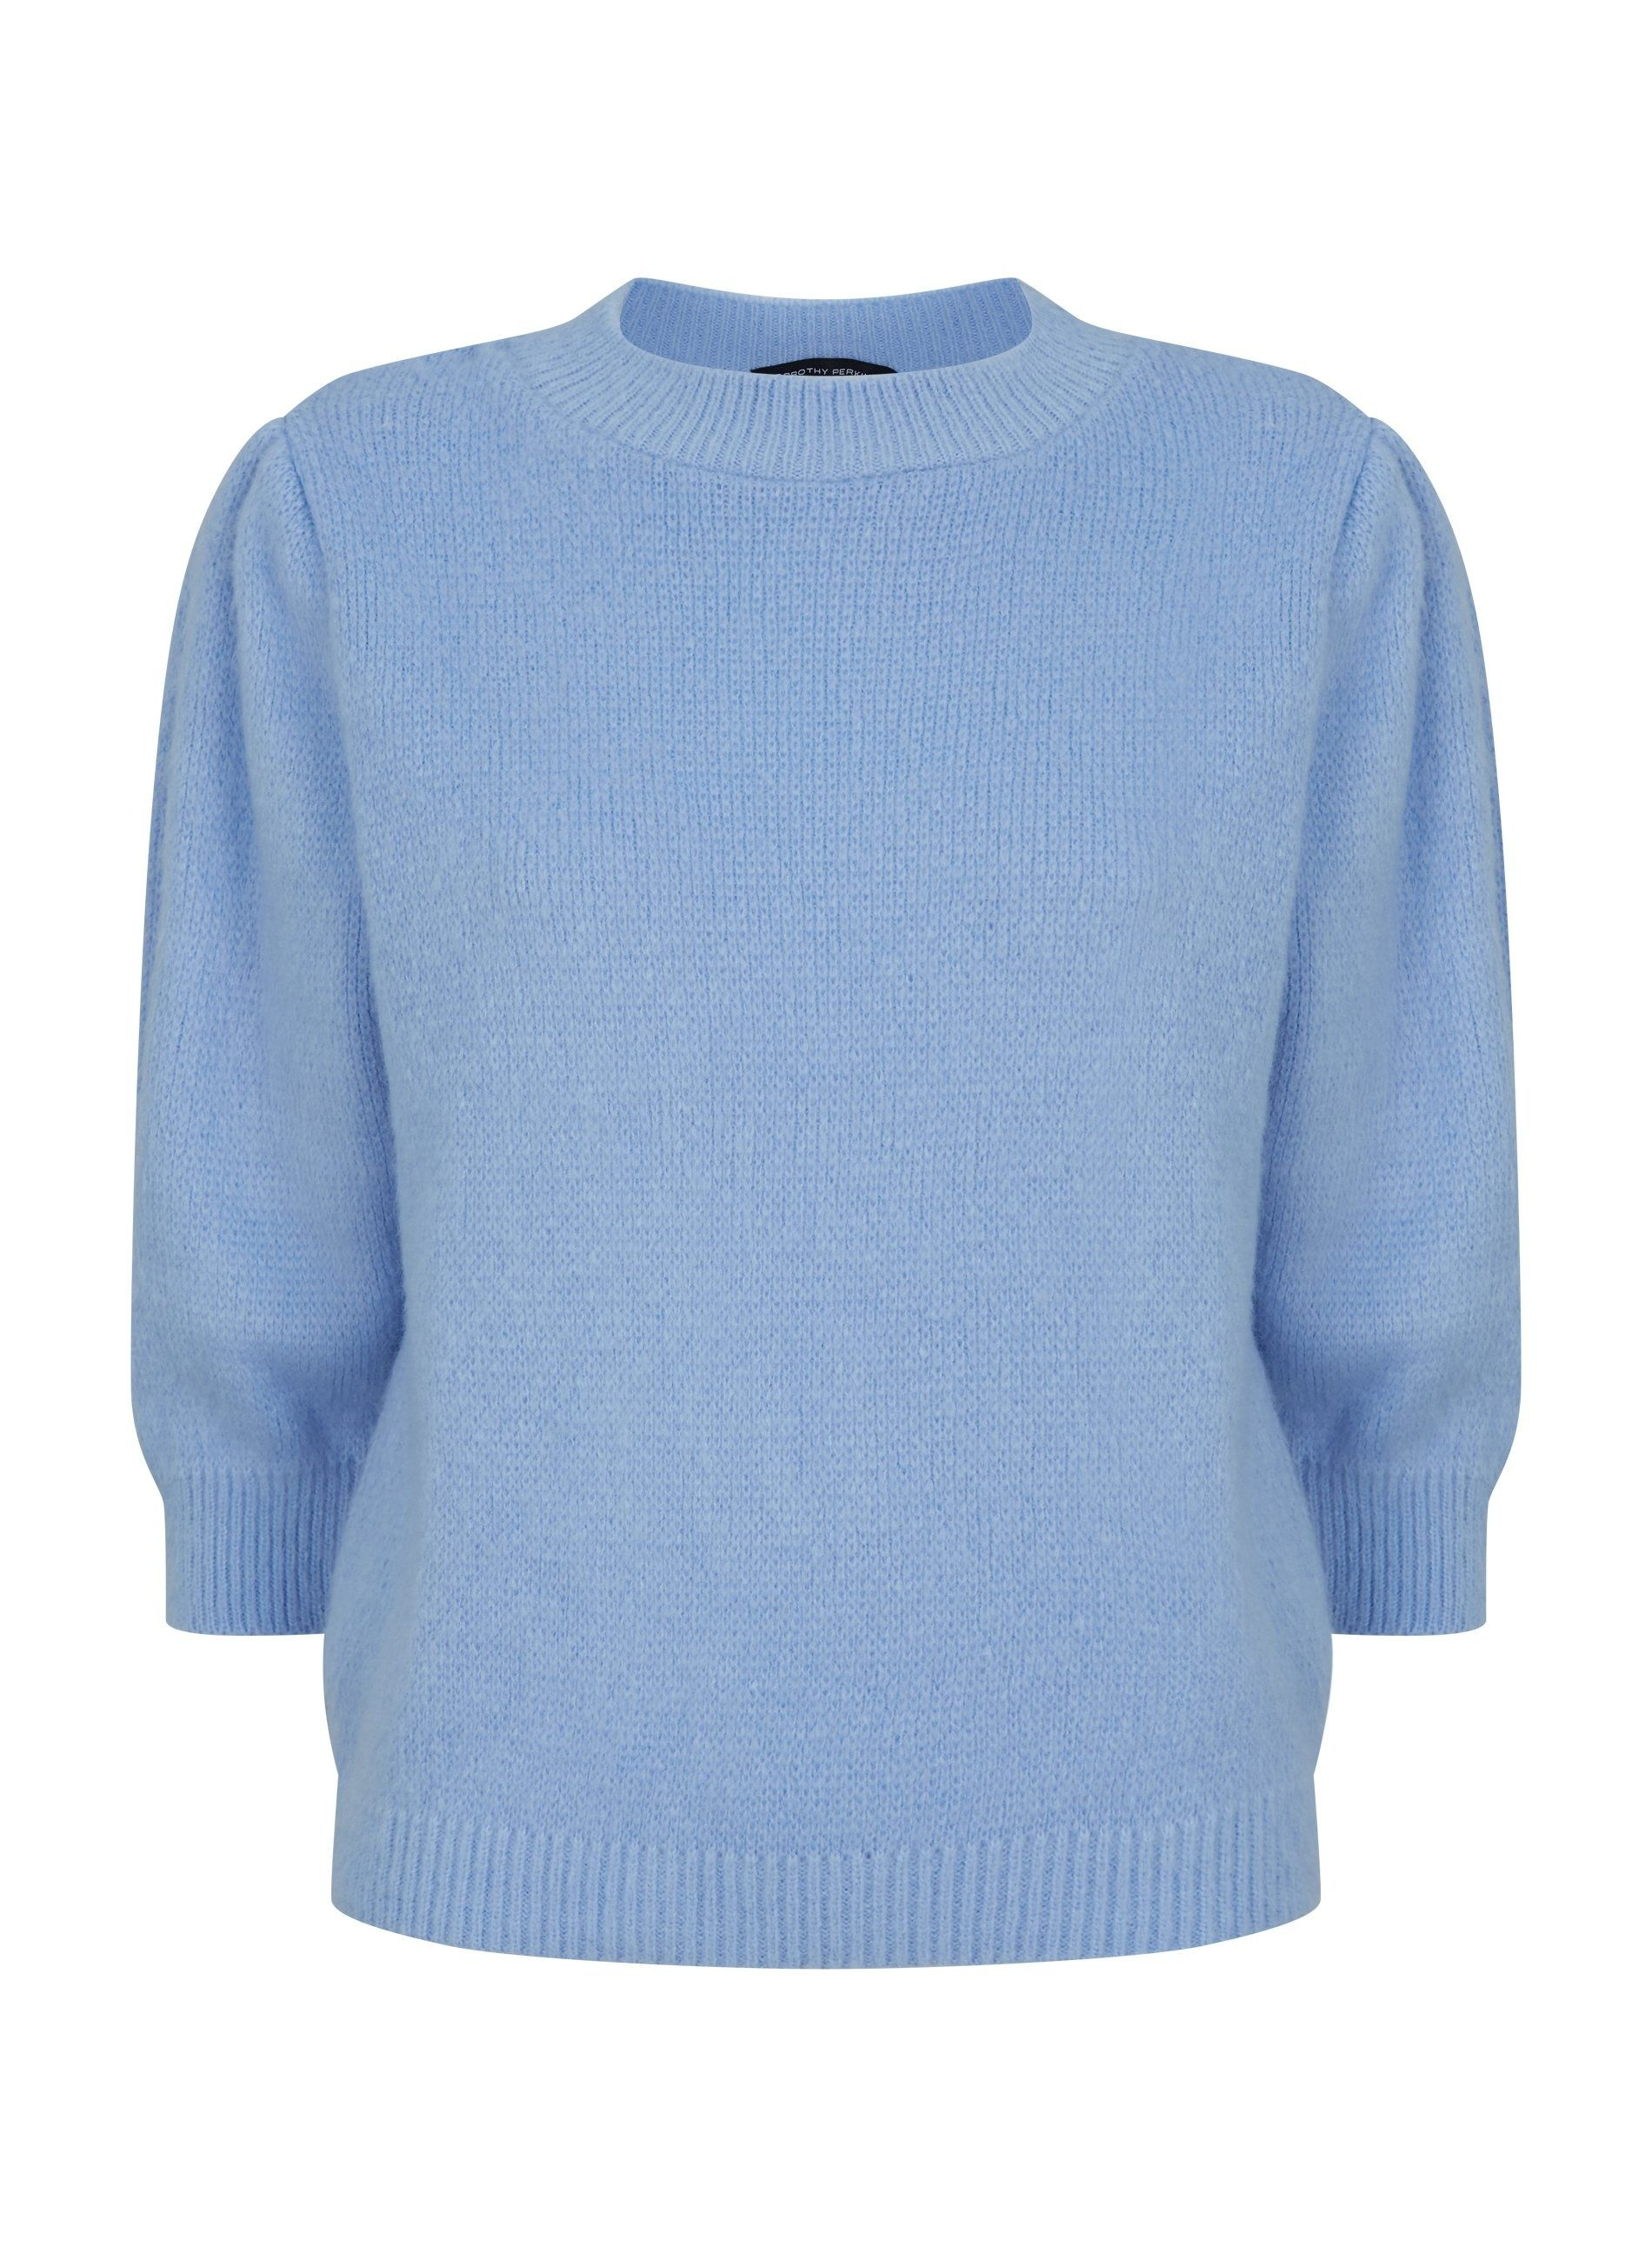 Dorothy Perkins Womens Blue Knitted T Shirt Top Blouse 3/4 Sleeve Round Neck